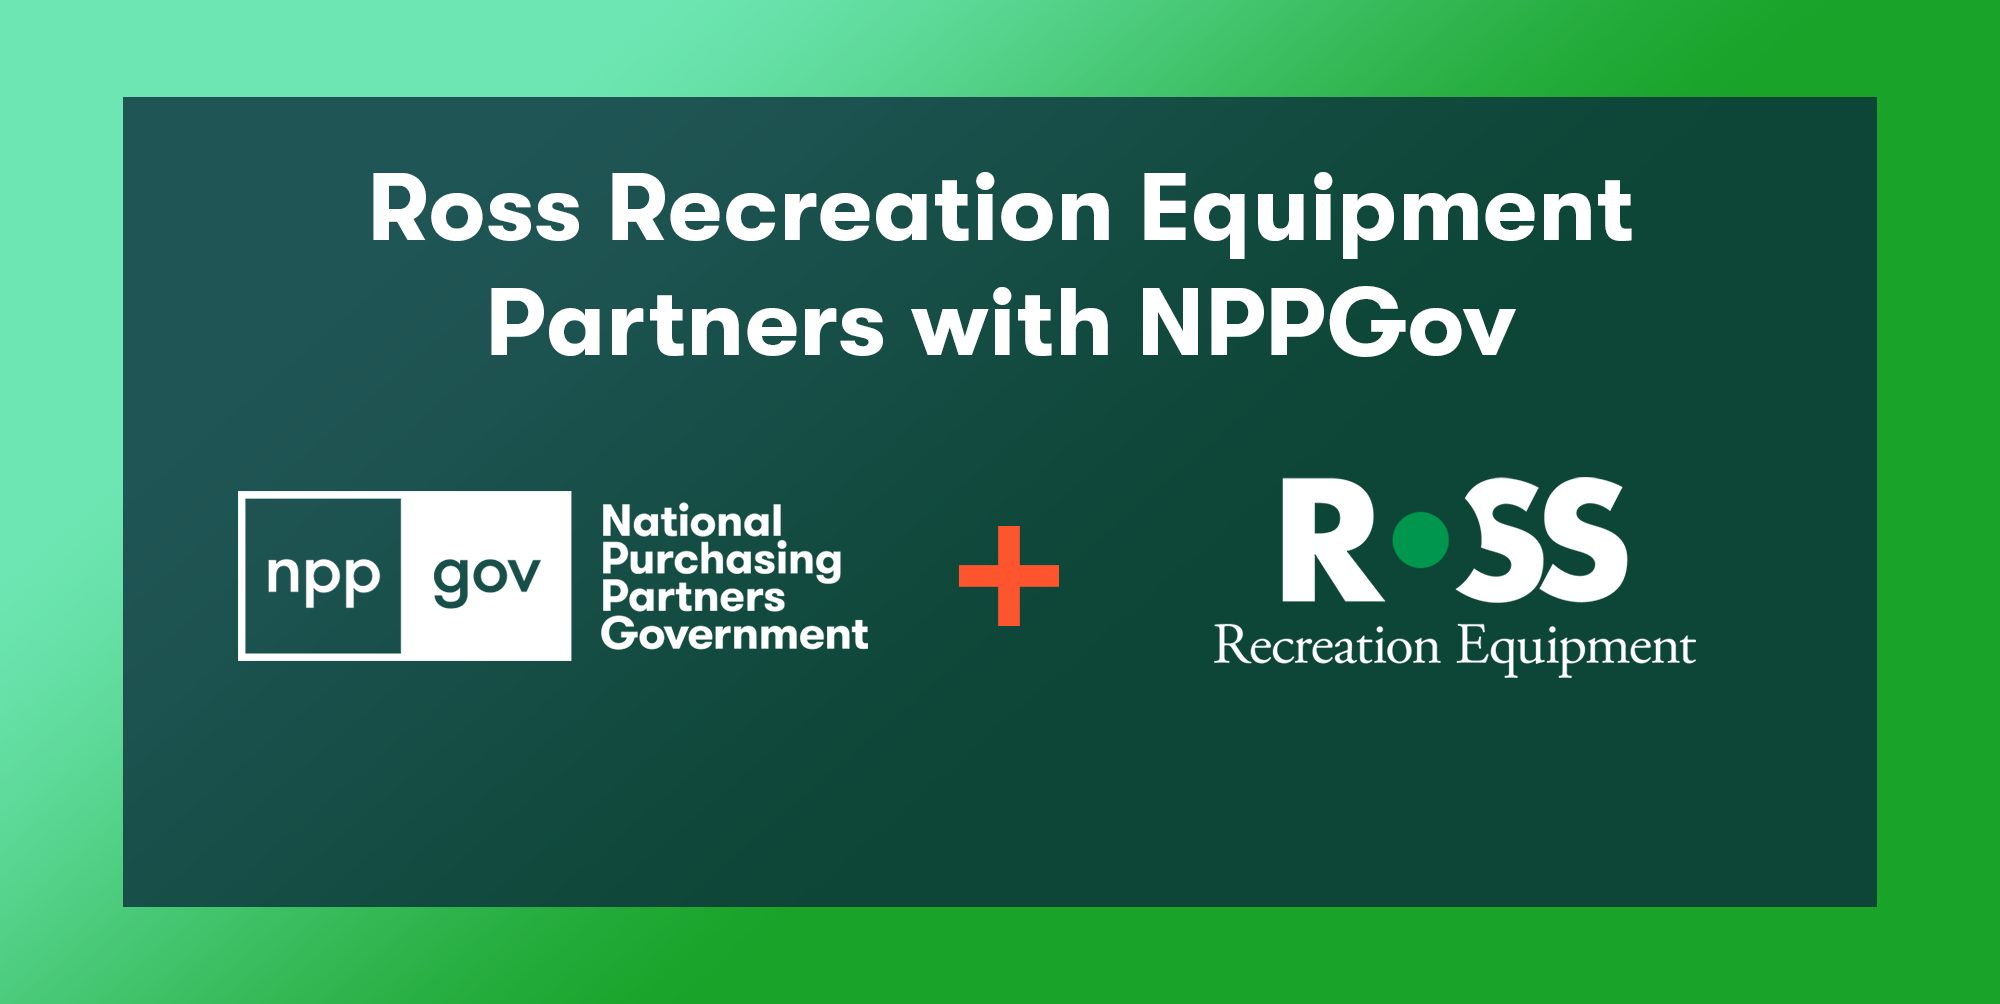 Ross Recreation Partners with NPPGov